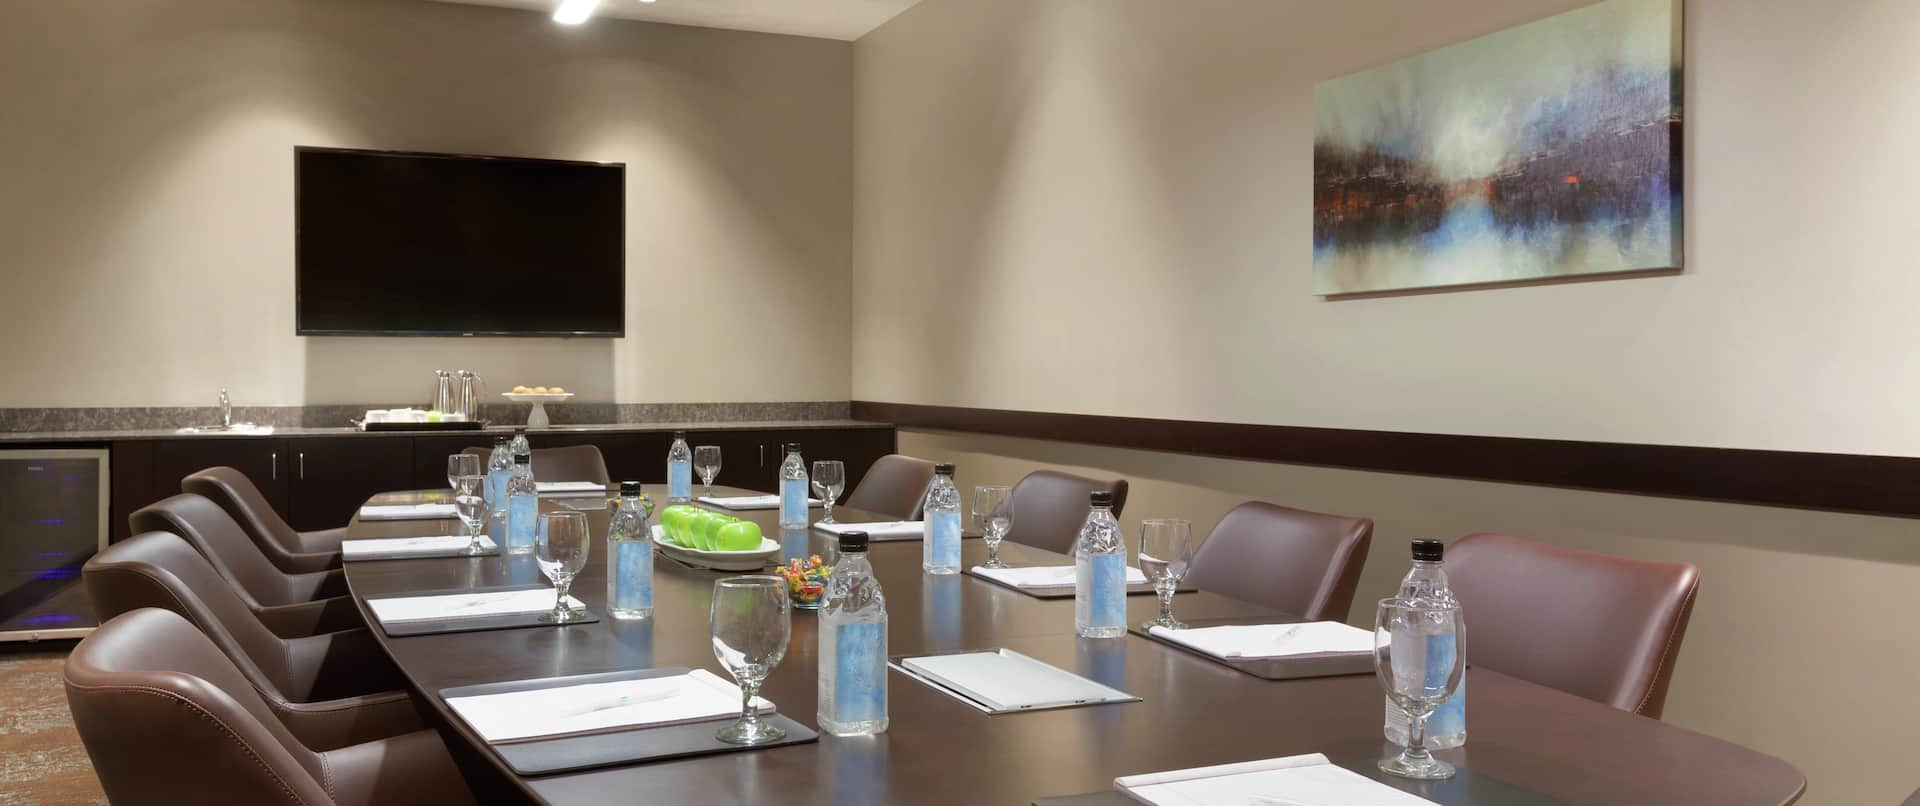 TV and Seating for 10 at Boardroom Table in Meeting Room